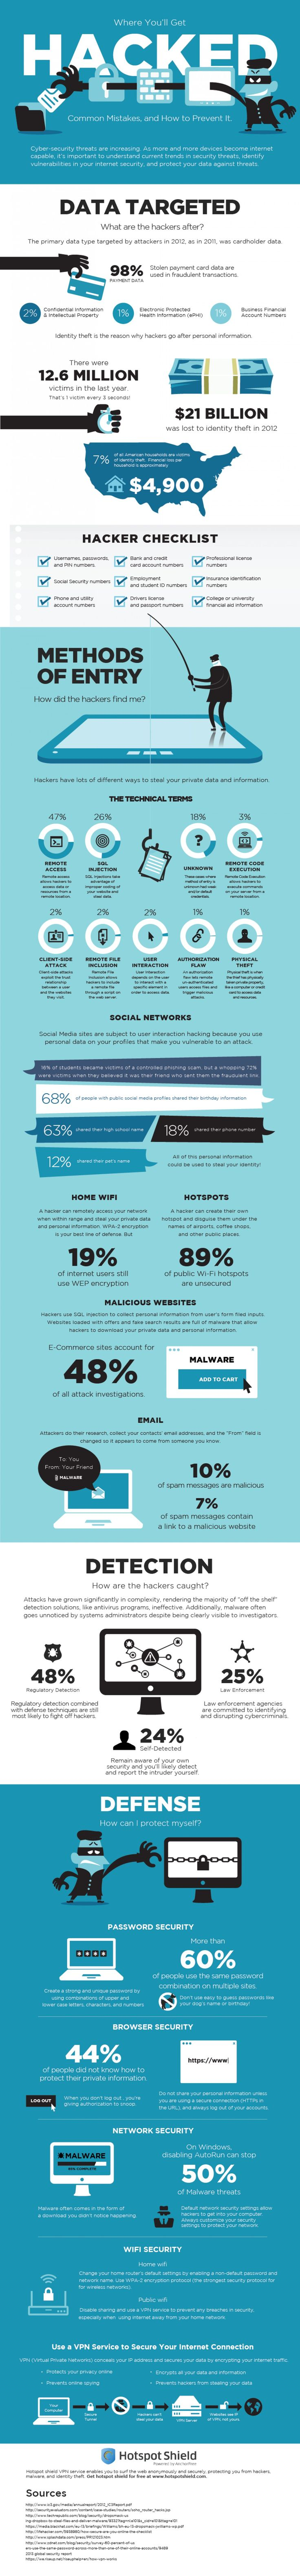 How To Protect Yourself From Hackers Infographic